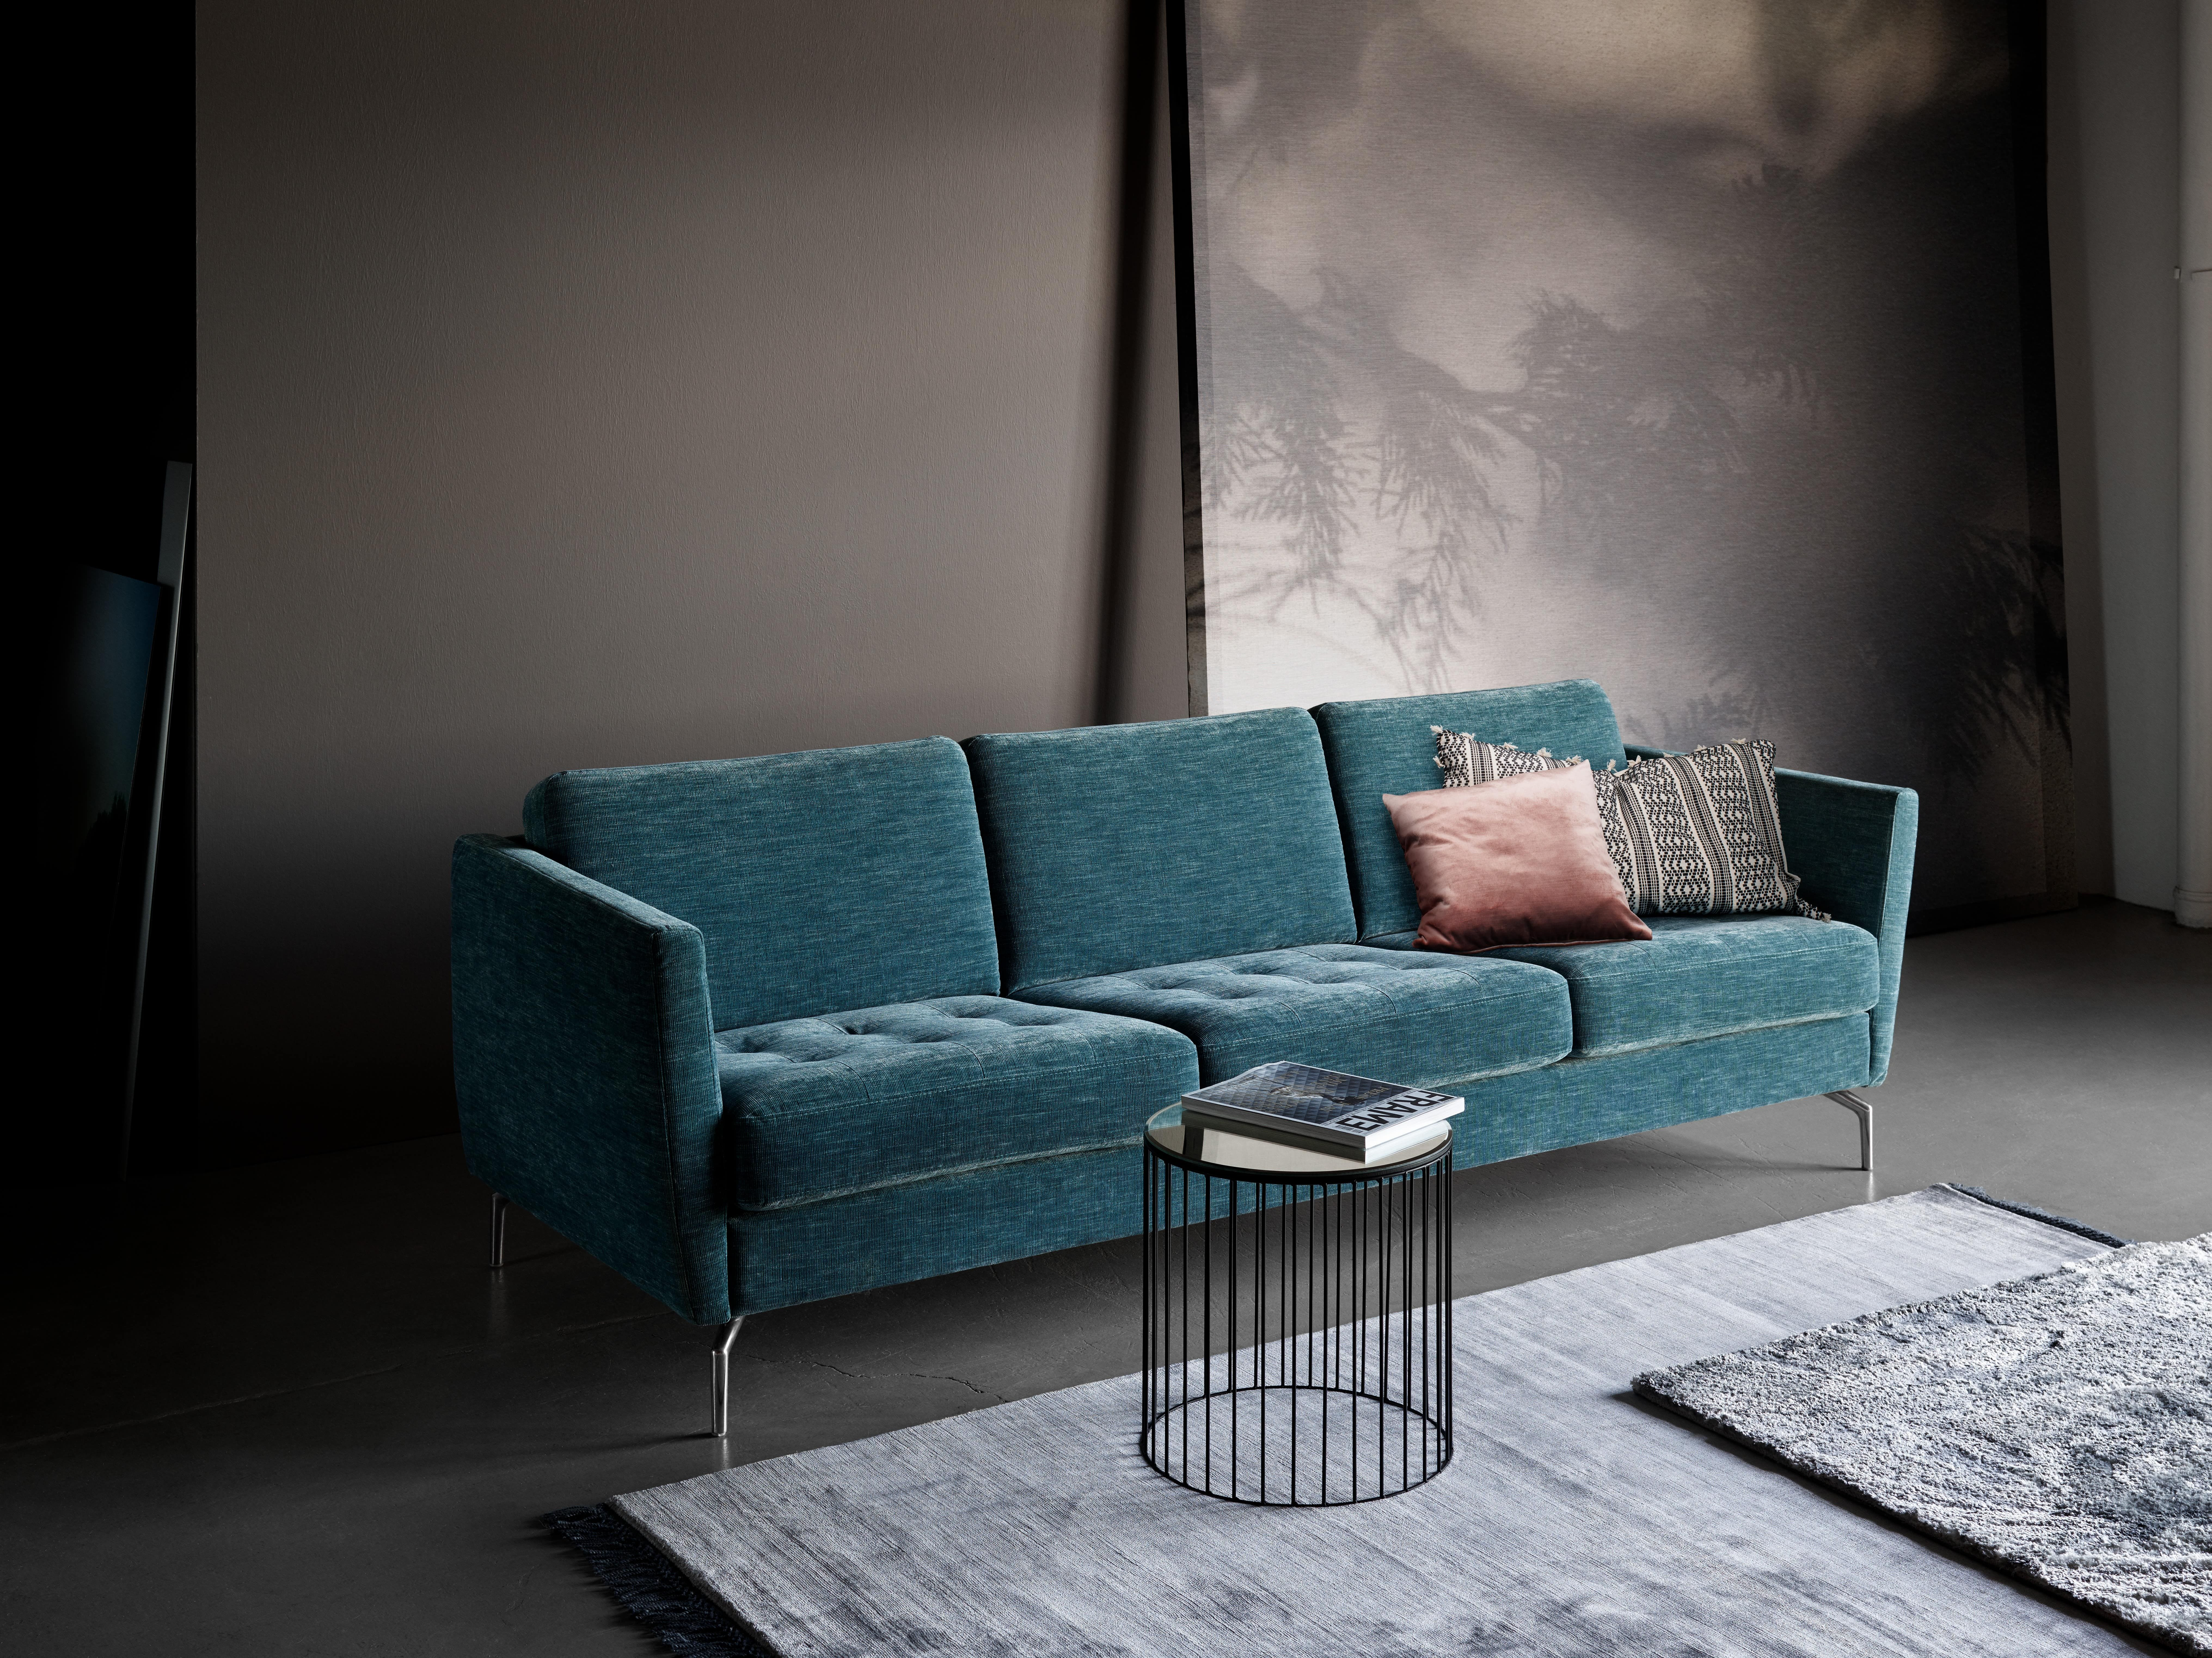 Interio Sofa Samt Couch Turkis Elegant Apartment Trkis Zentral Apartment Bremen